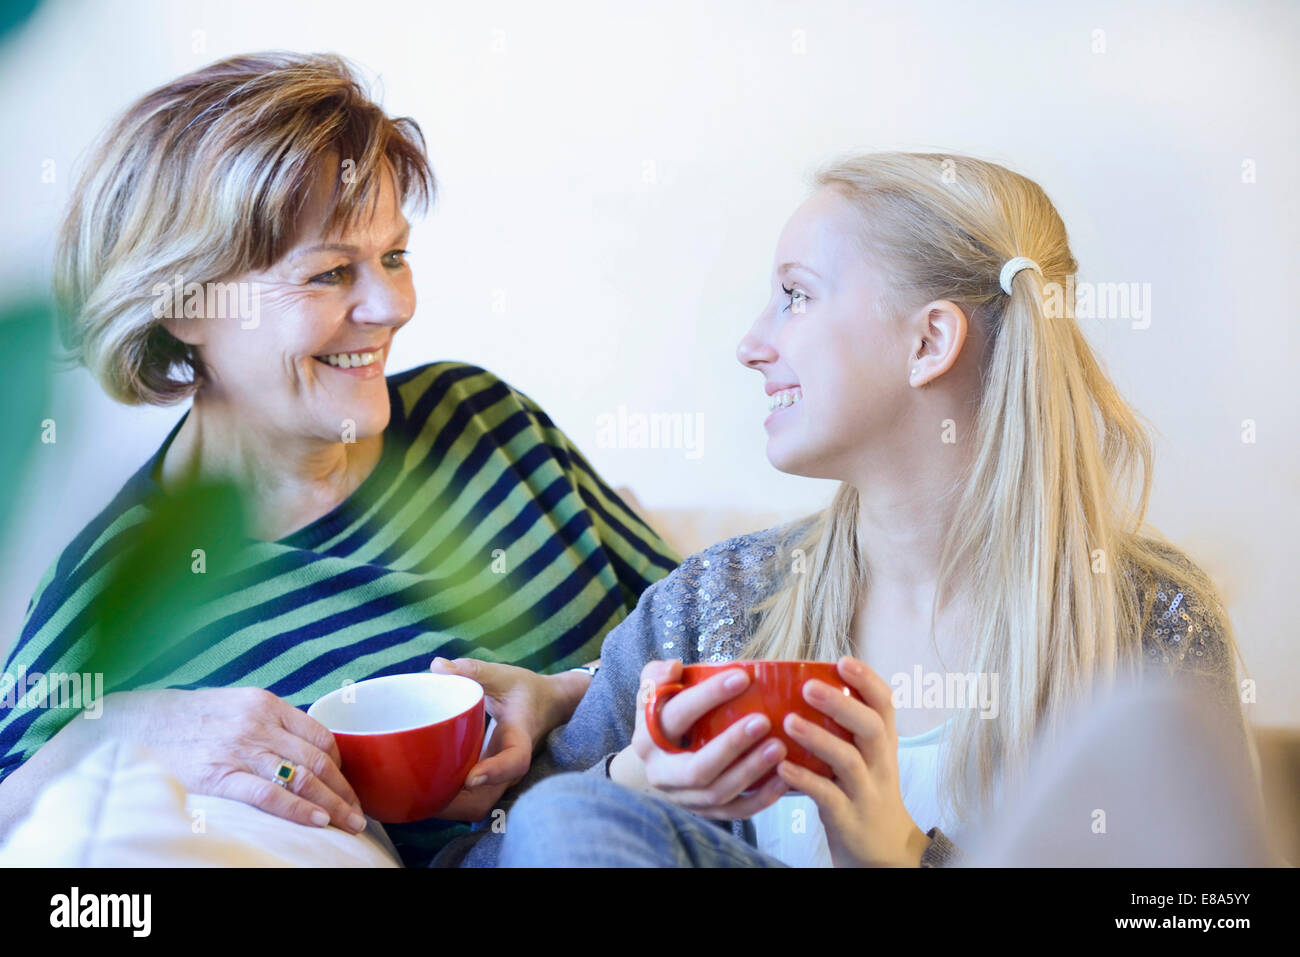 Grandmother and granddaughter in conversion on couch - Stock Image